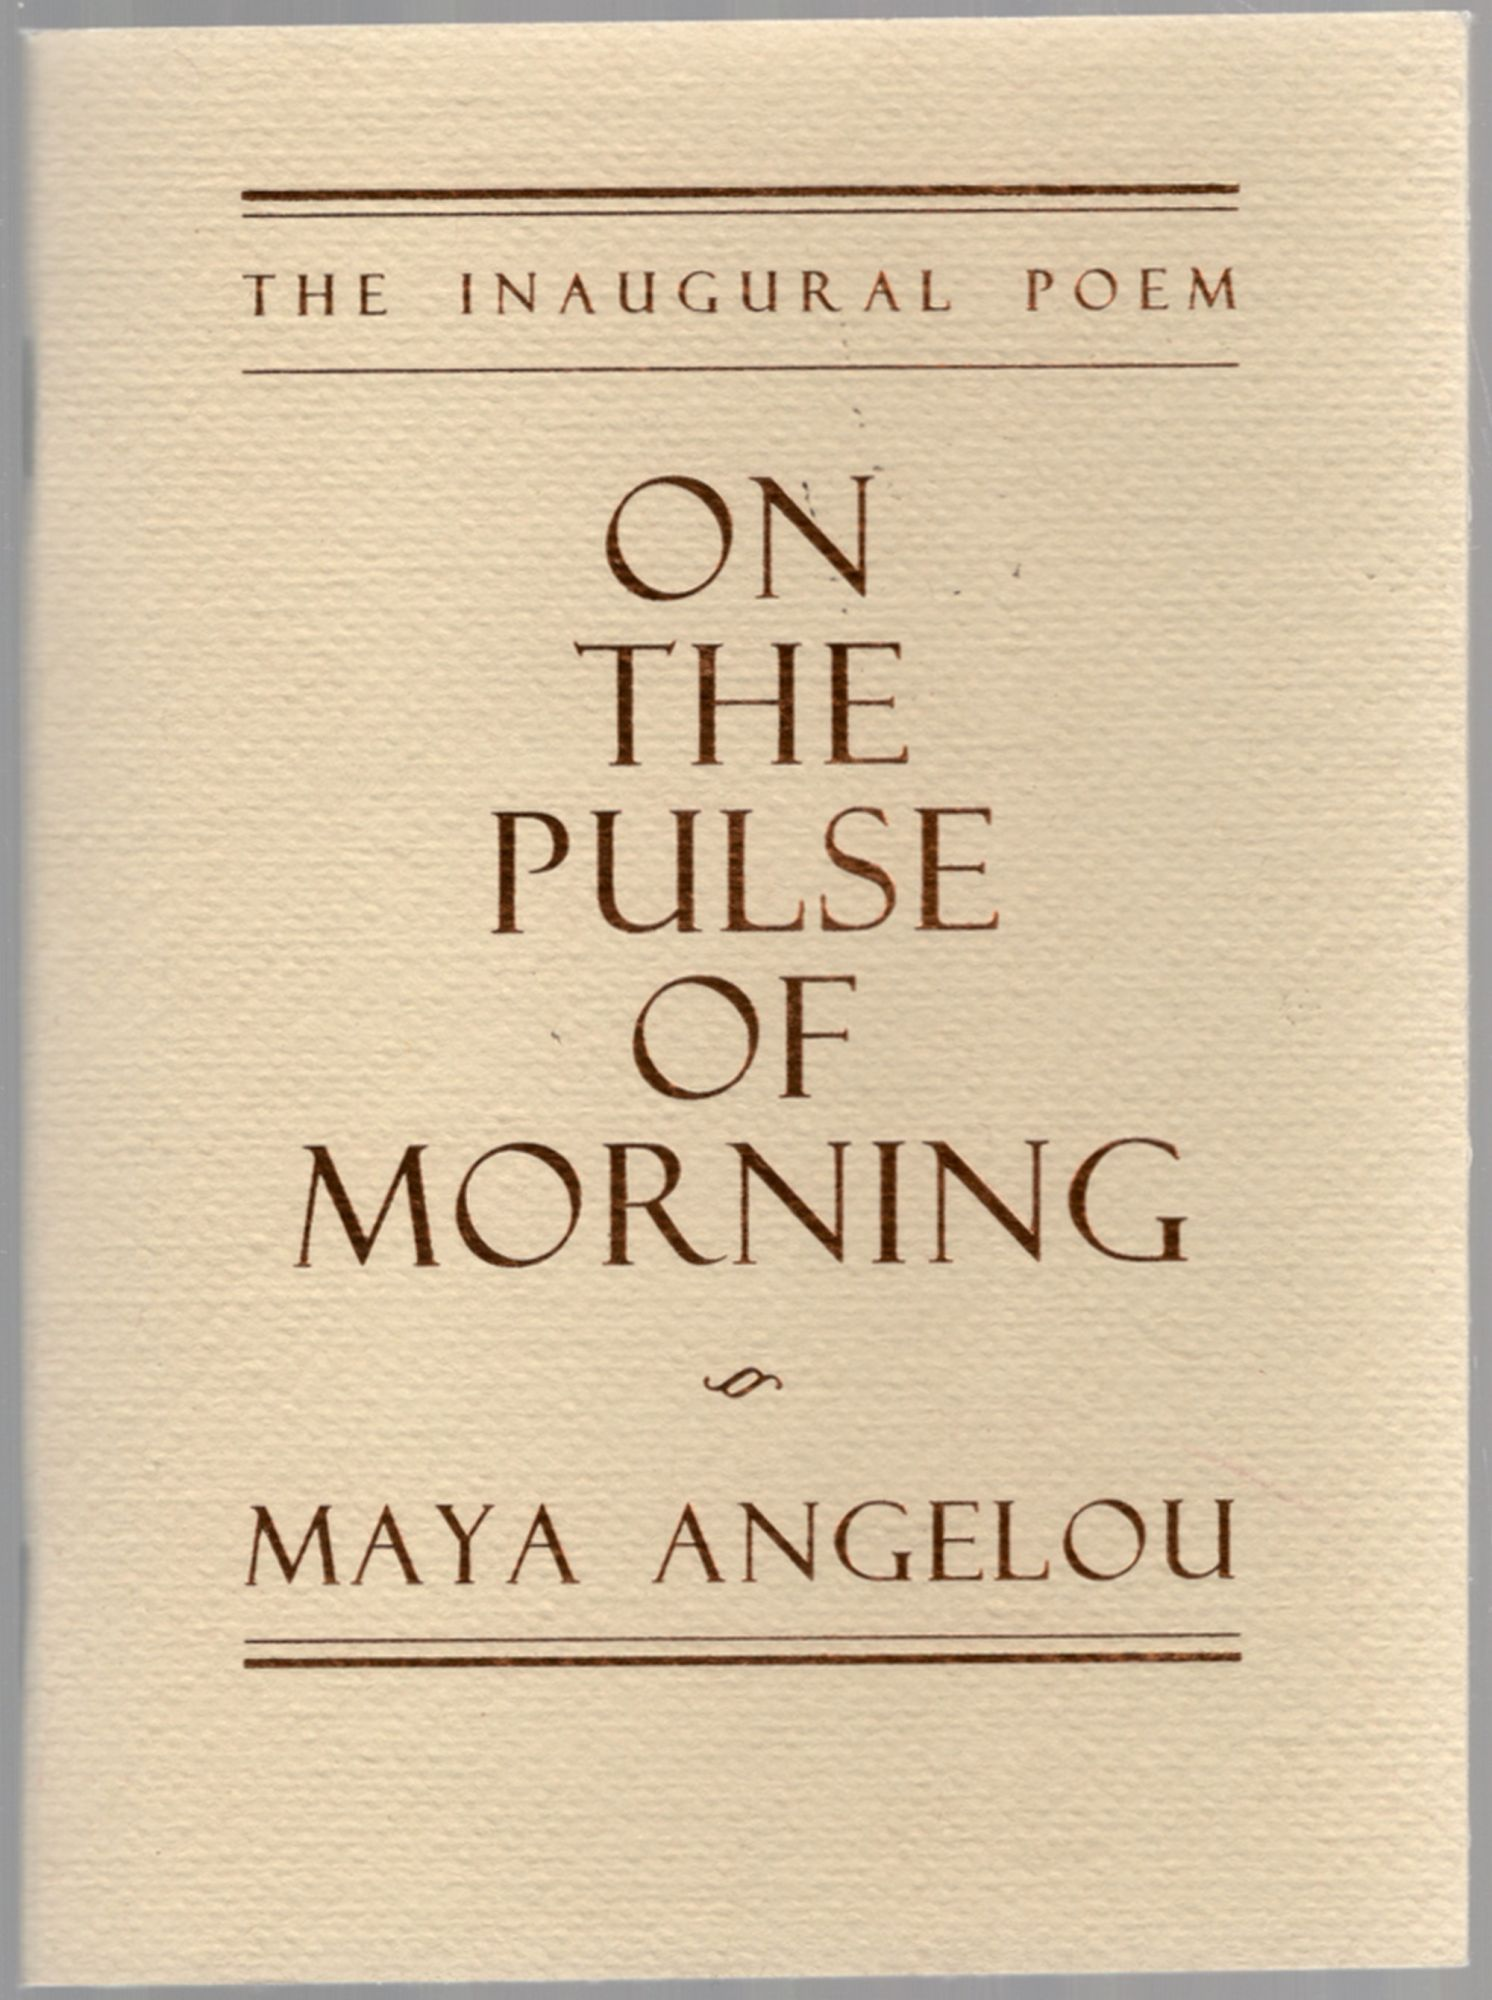 On the Pulse of the Morning: The Inaugural Poem - ANGELOU, Maya